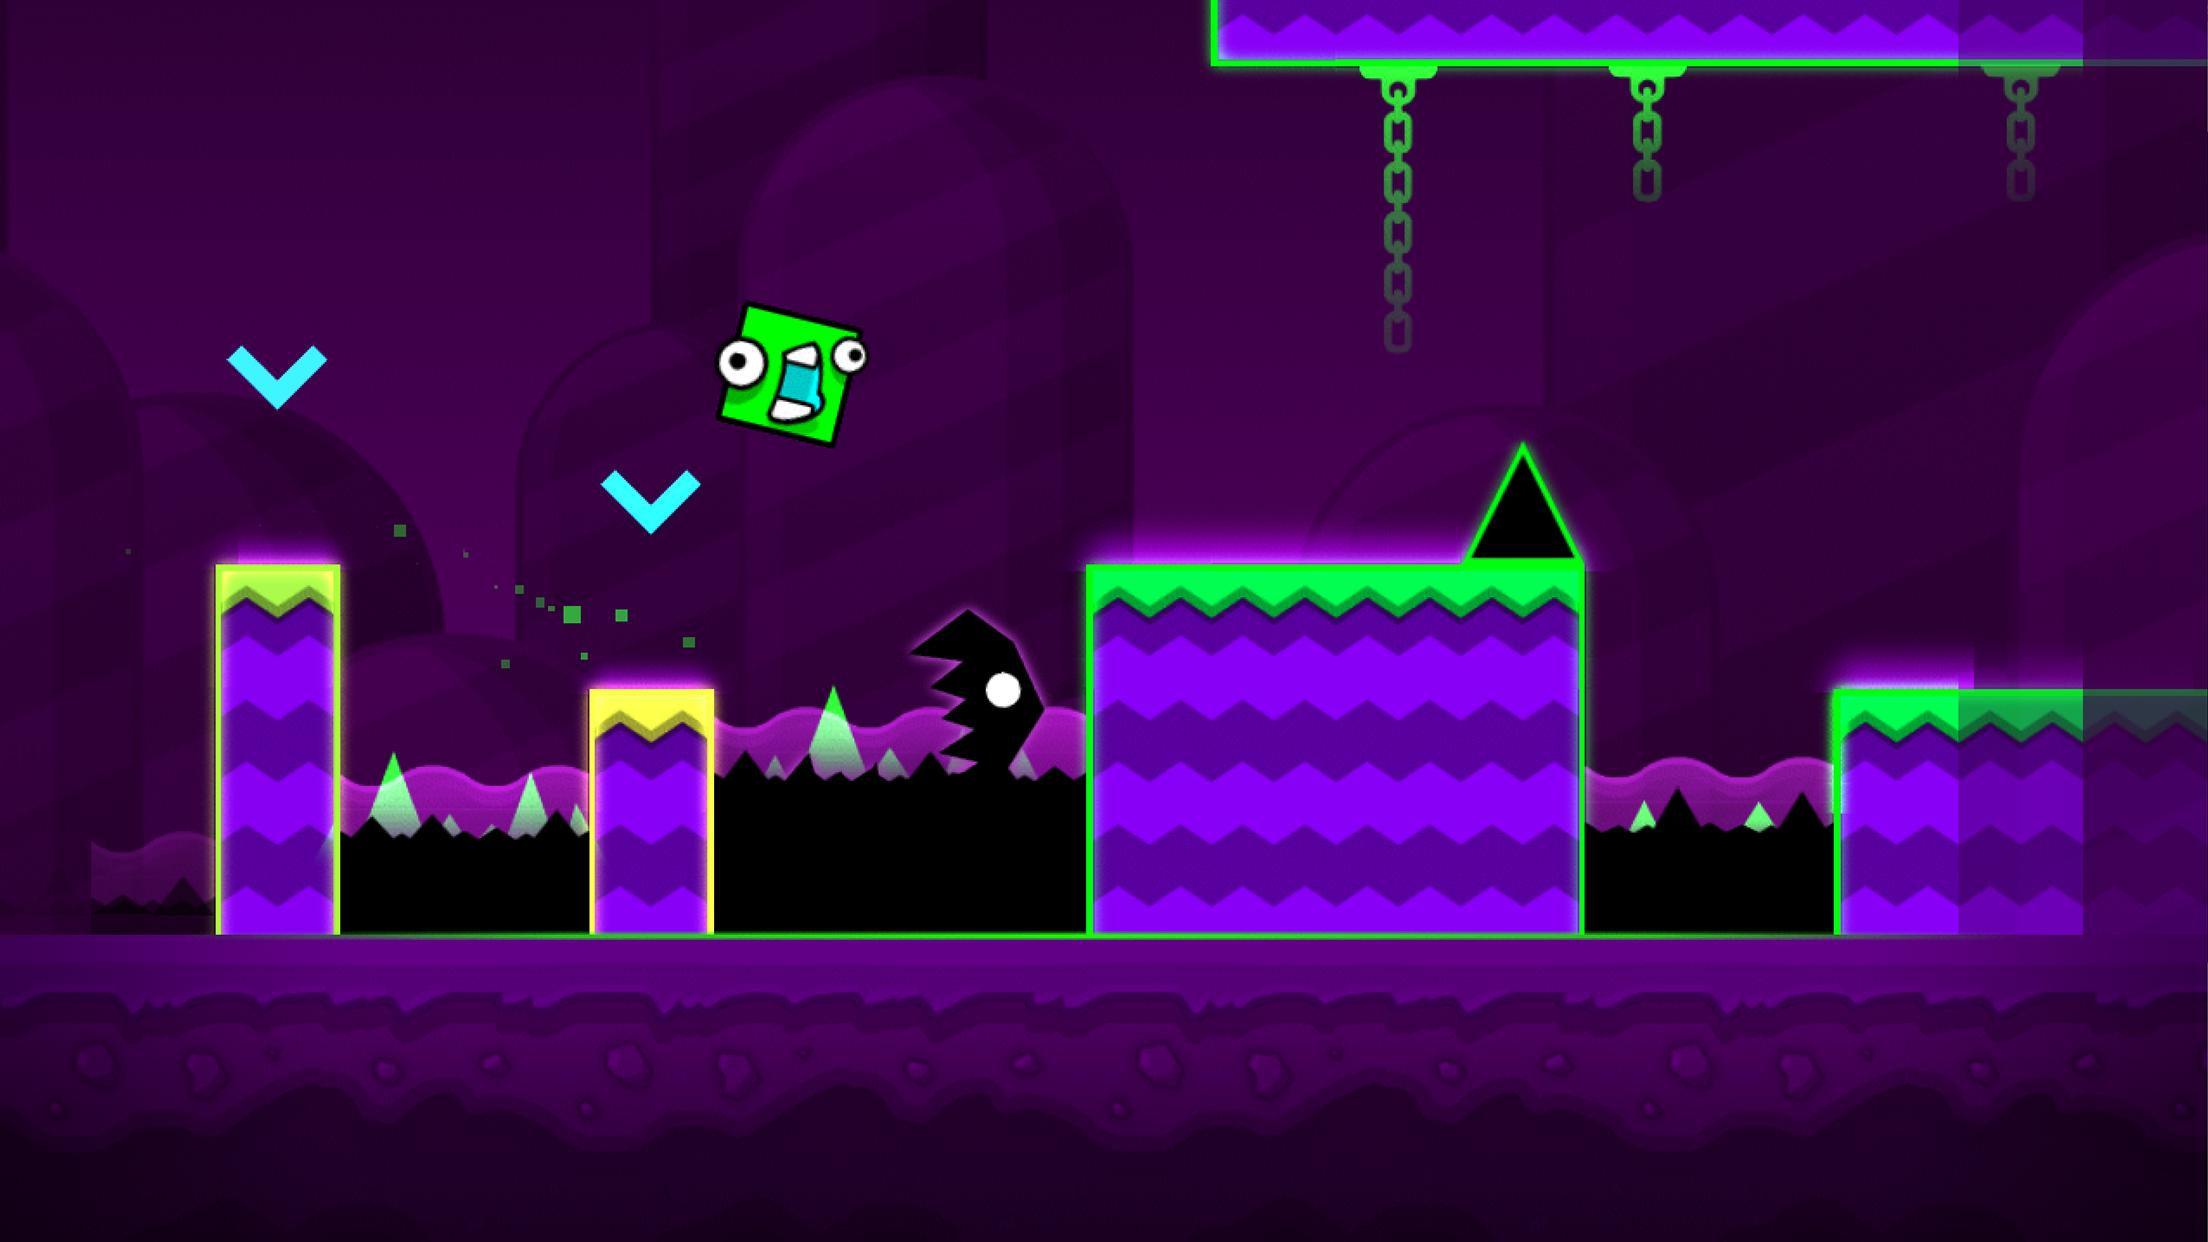 Geometry Dash World Apk Download Adventure Game With New Levels New Music And New Monsters